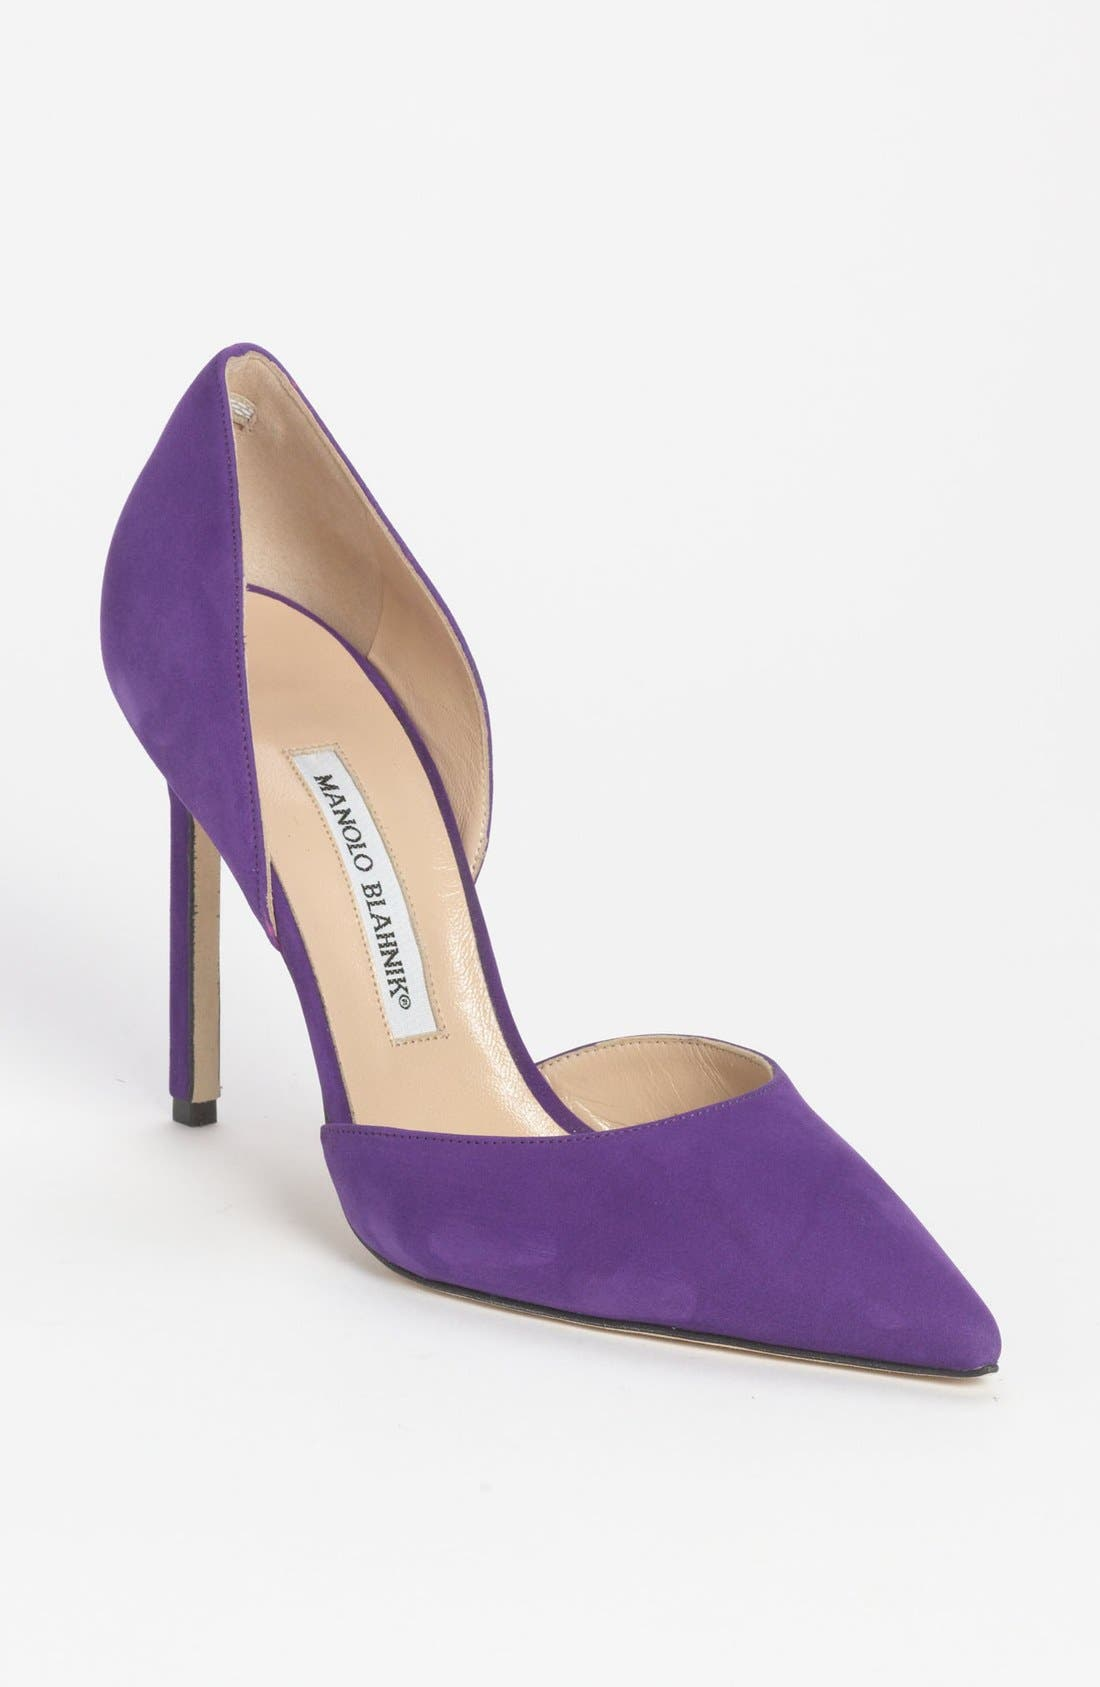 Alternate Image 1 Selected - Manolo Blahnik 'Tayler' d'Orsay Pump